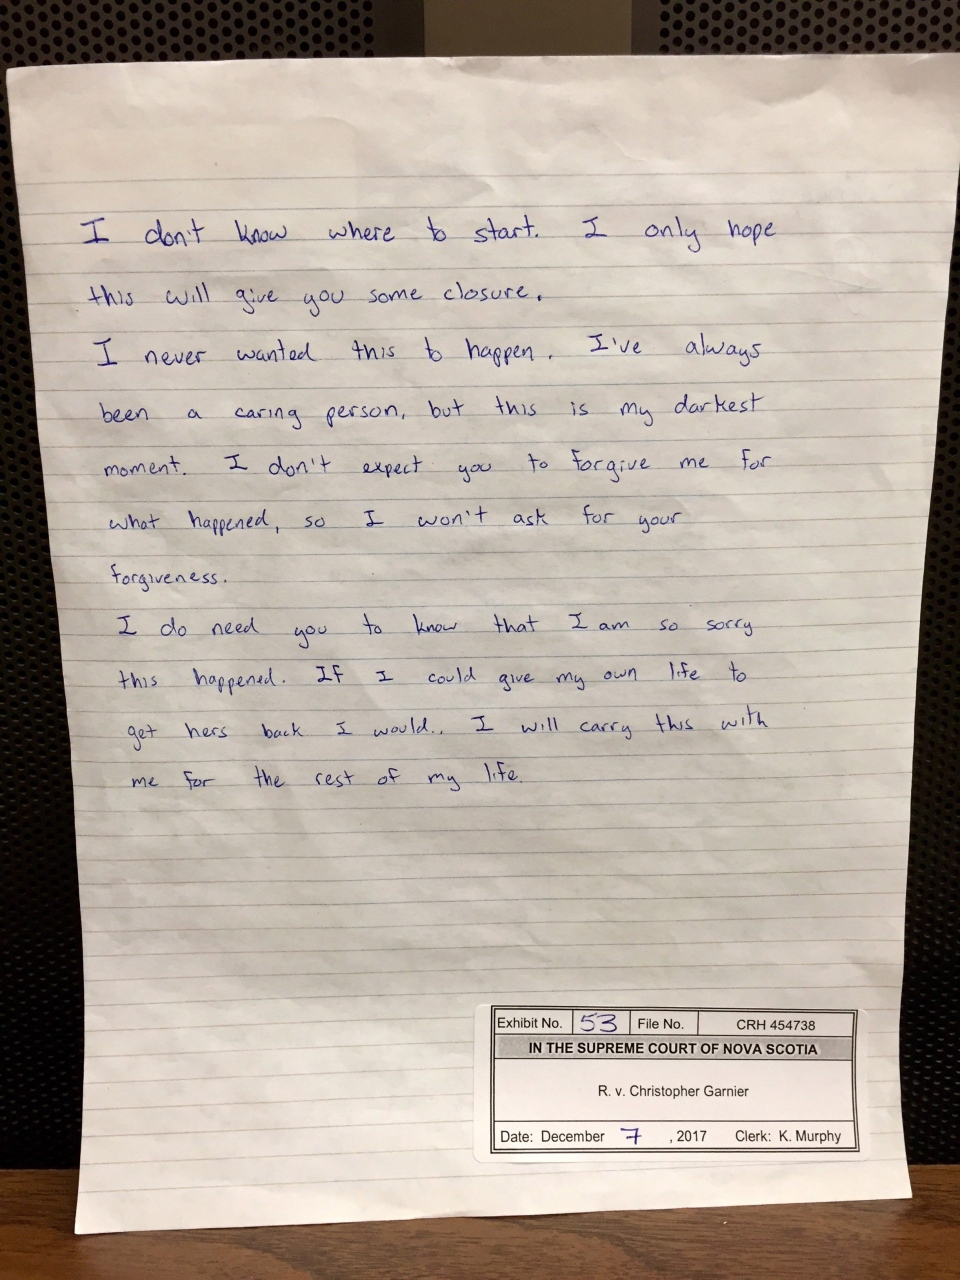 Christopher Garnier wrote a letter, shown here, to Catherine Campbell's family during an interview with police hours after he was arrested in the off-duty police officer's death. (THE CANADIAN PRESS/HO-Nova Scotia Supreme Court)